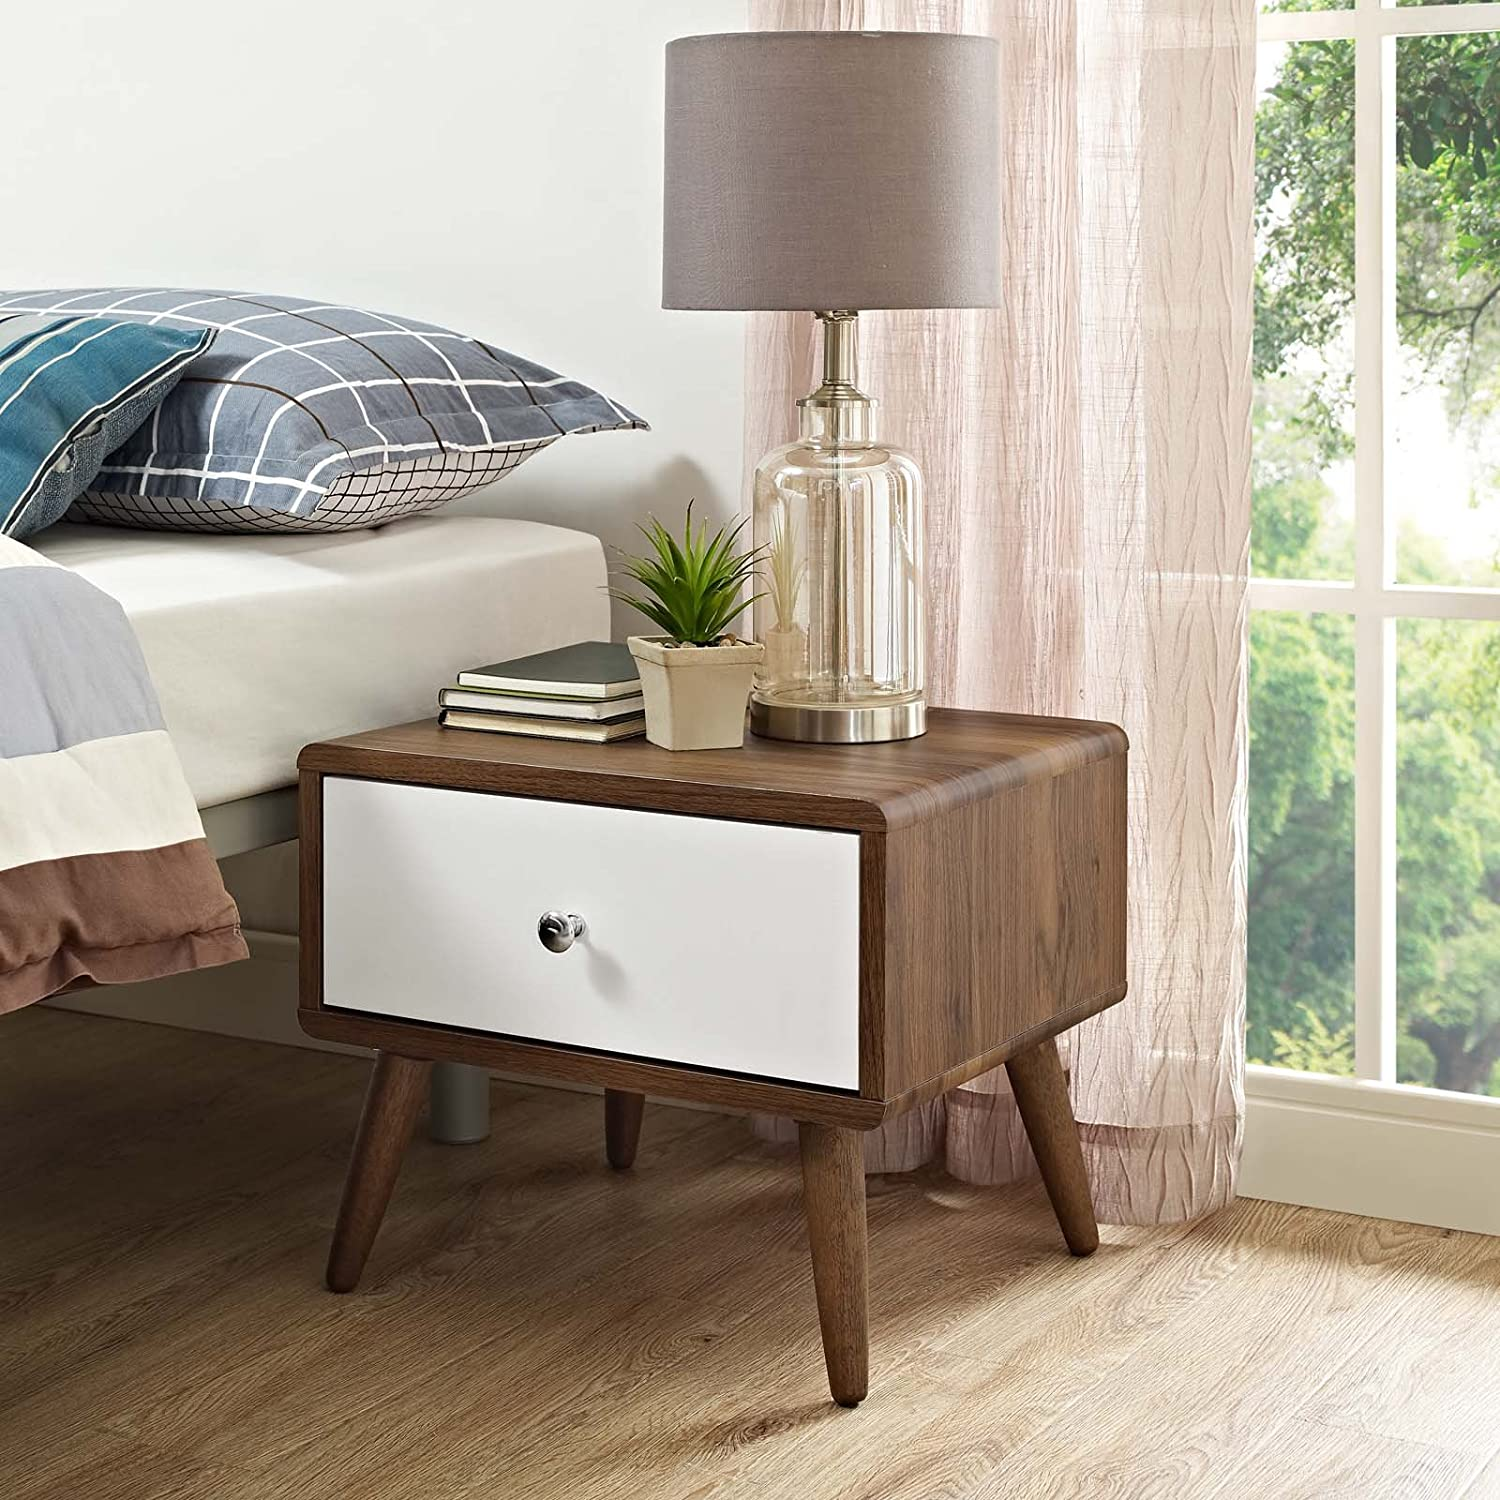 Modway Transmit, Nightstand, Walnut White